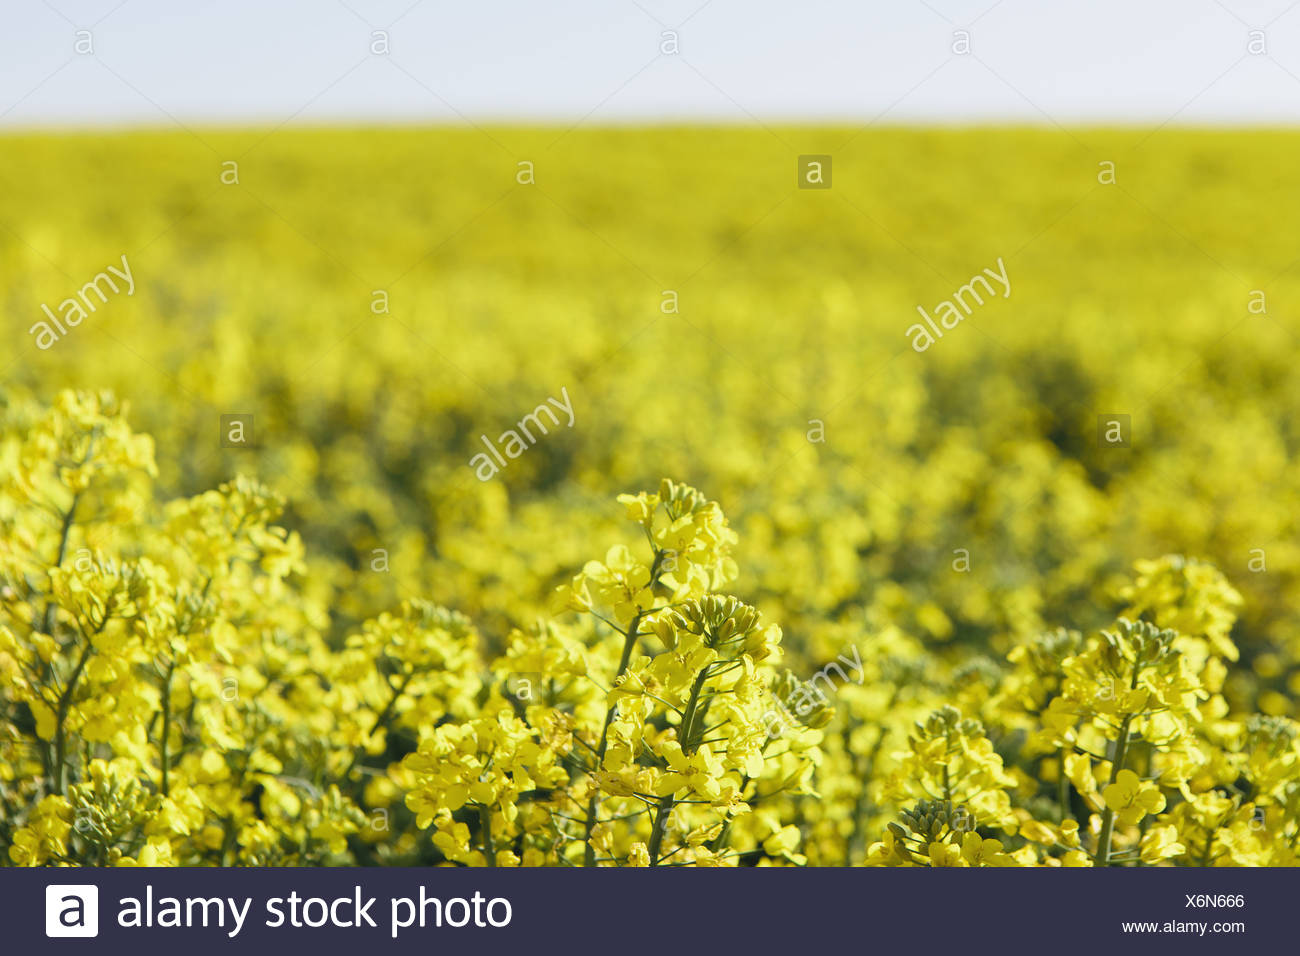 A Field Of Yellow Flowering Blooming Mustard Seed Plants In Spring